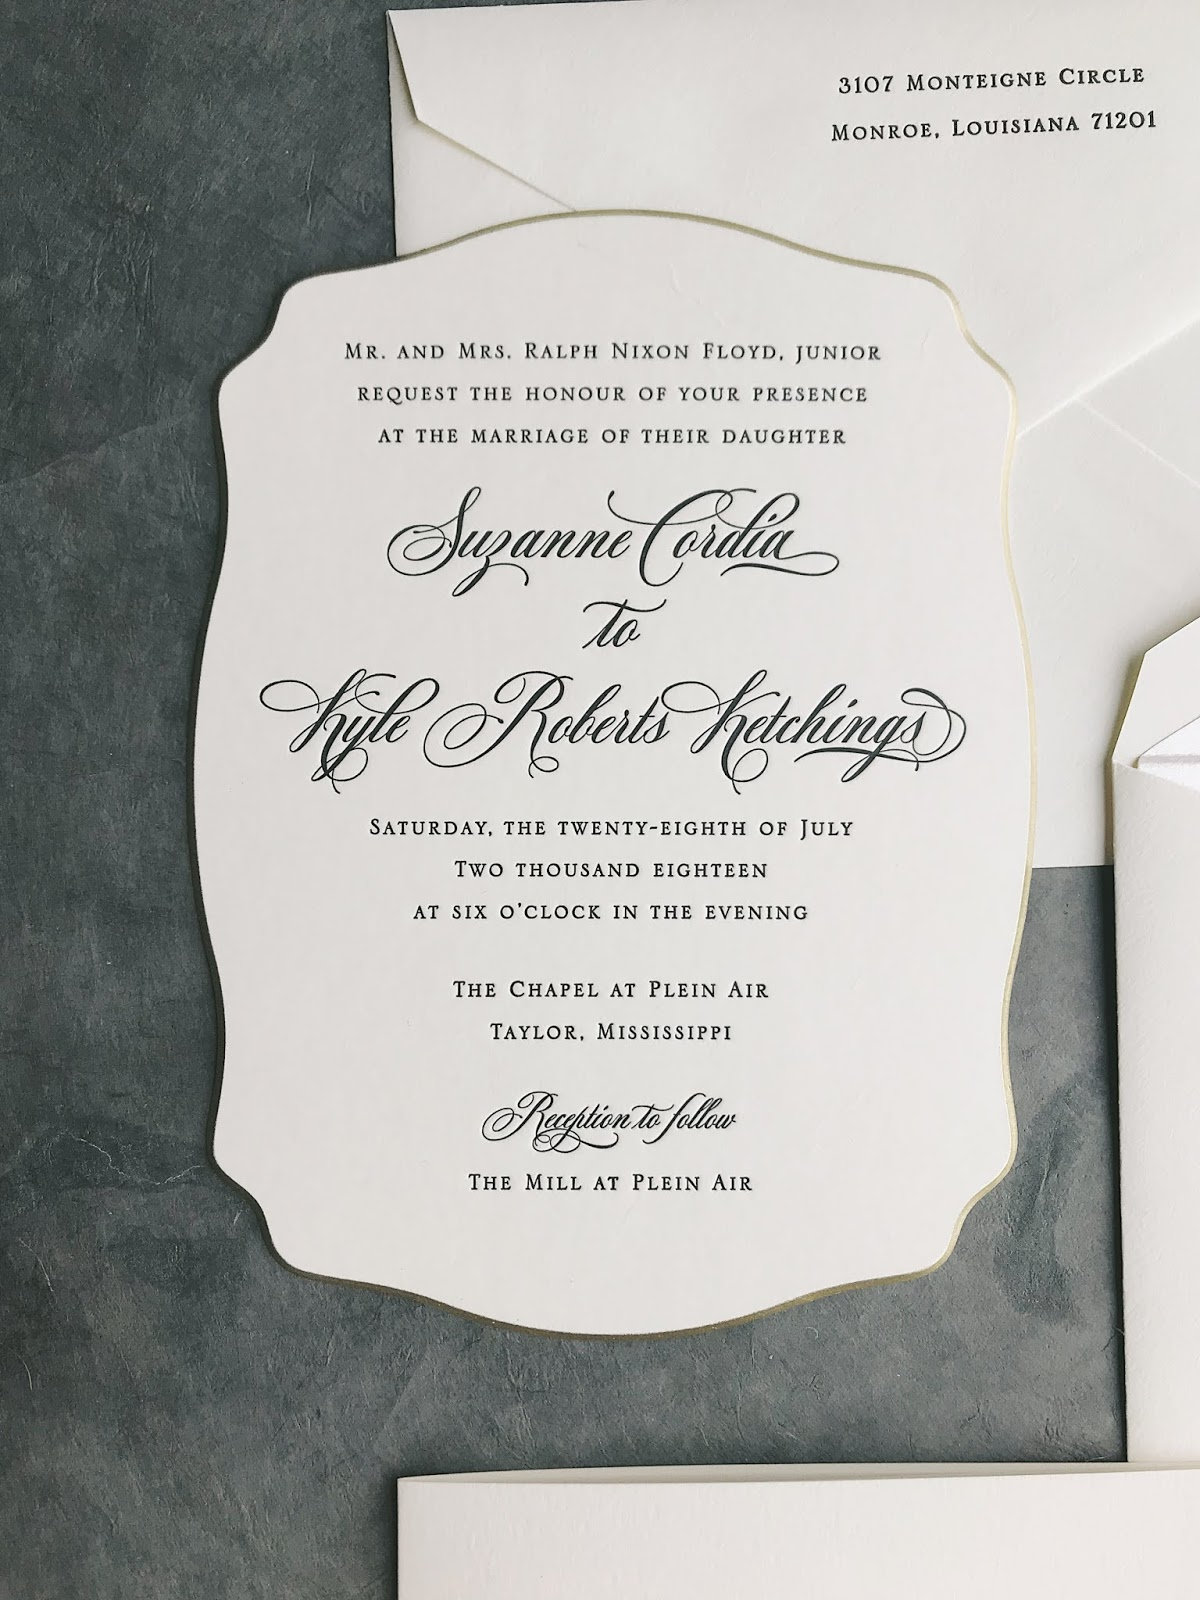 Wedding Invitations for Suzanne and Kyle | Fresh Ink : Style ...